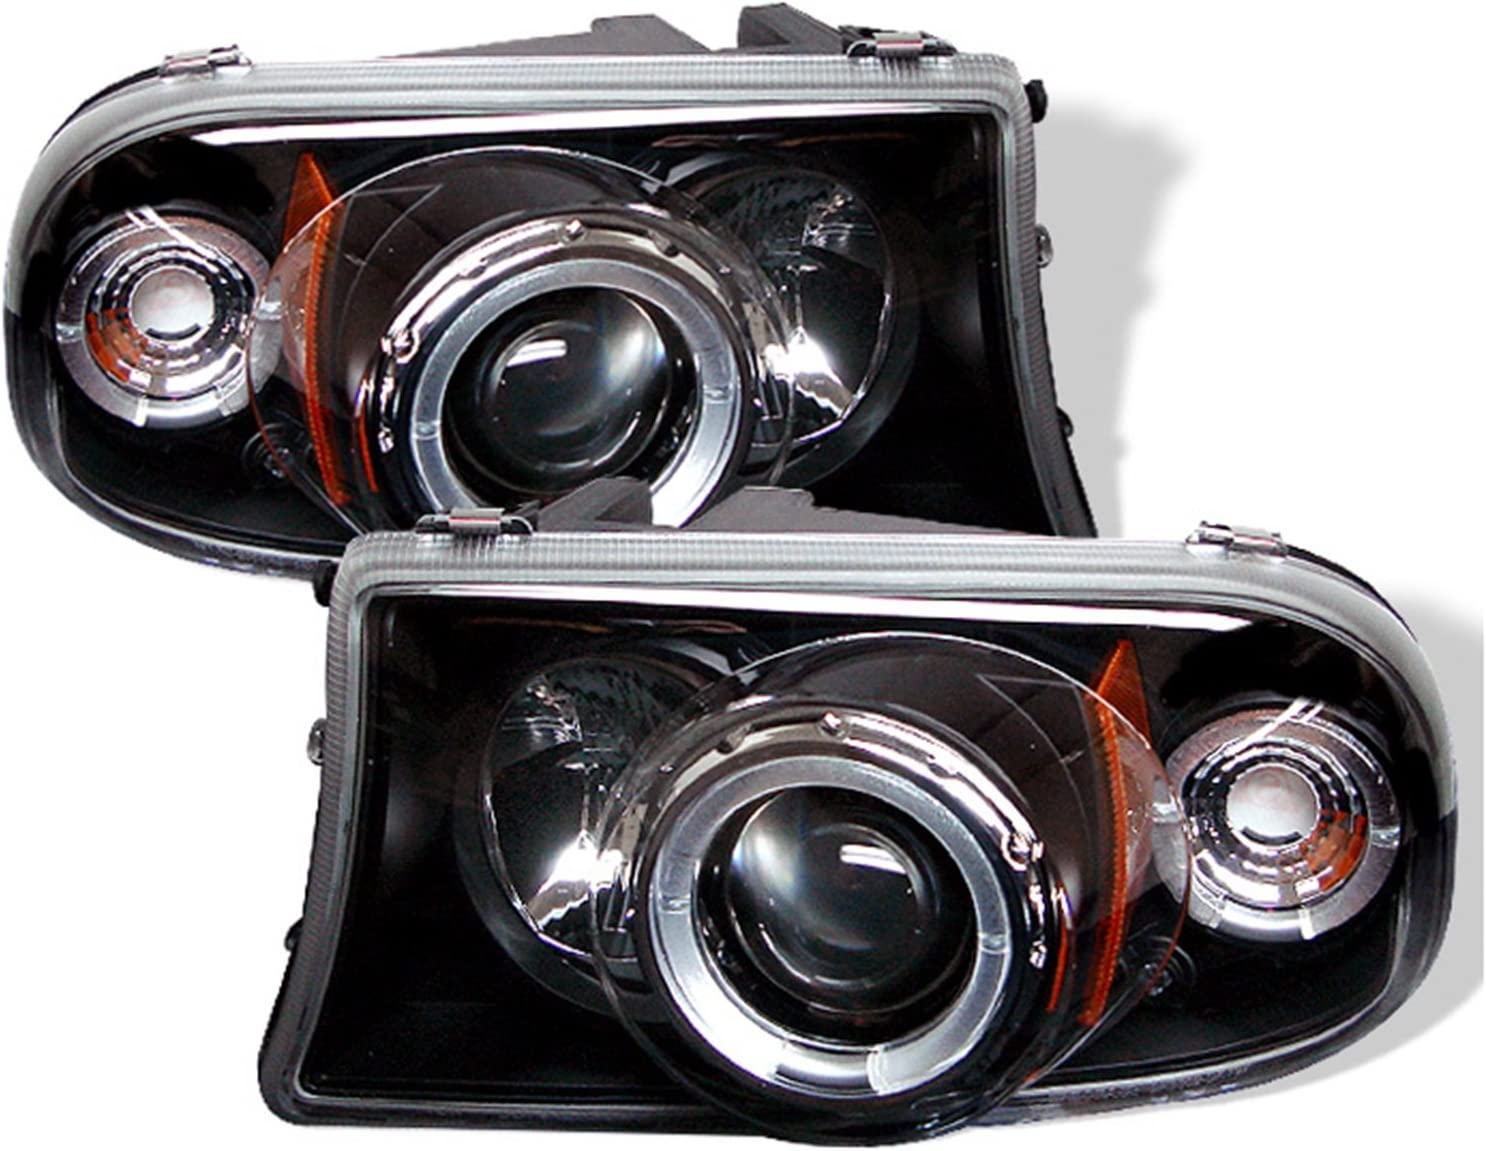 Spyder Auto Dodge Dakota//Durango Black Halogen Projector Headlight